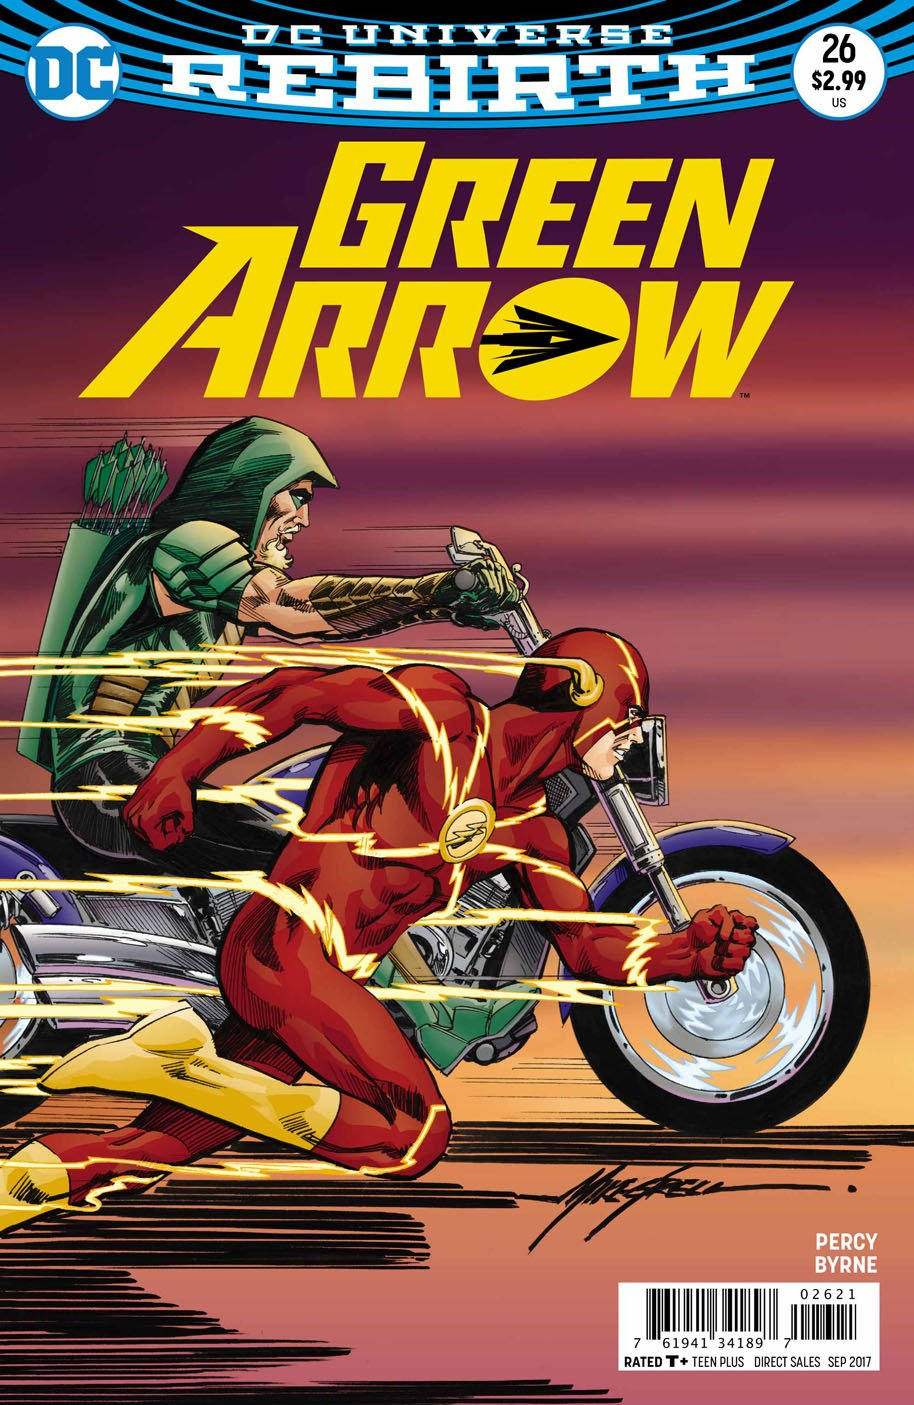 Green Arrow 26 open order variant cover